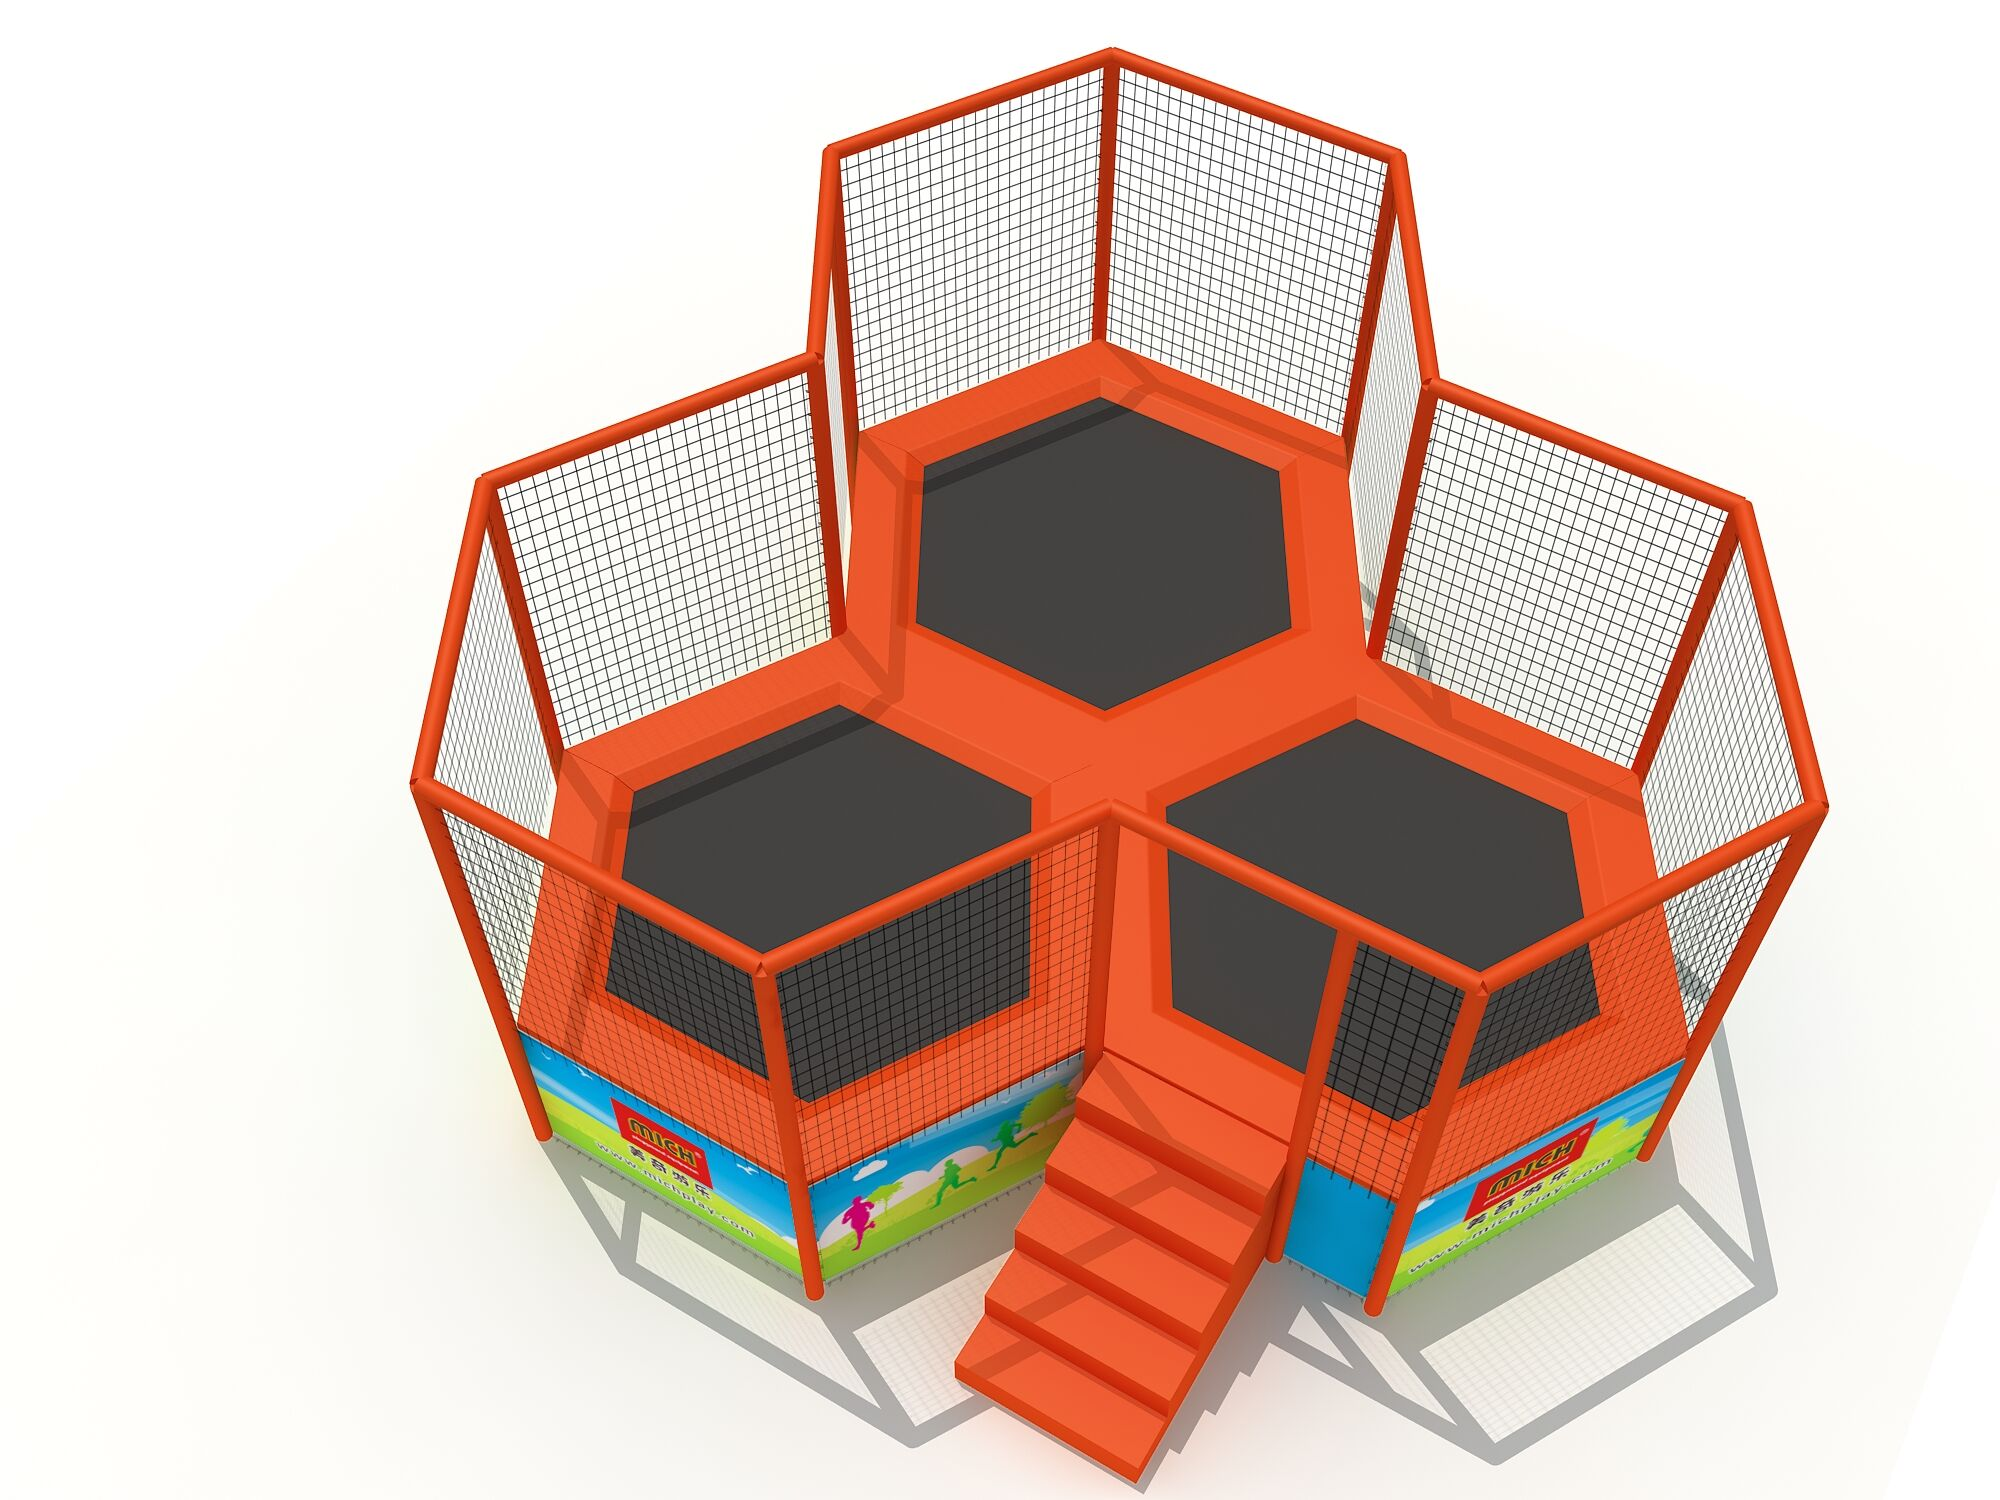 New features: Hexagon trampoline